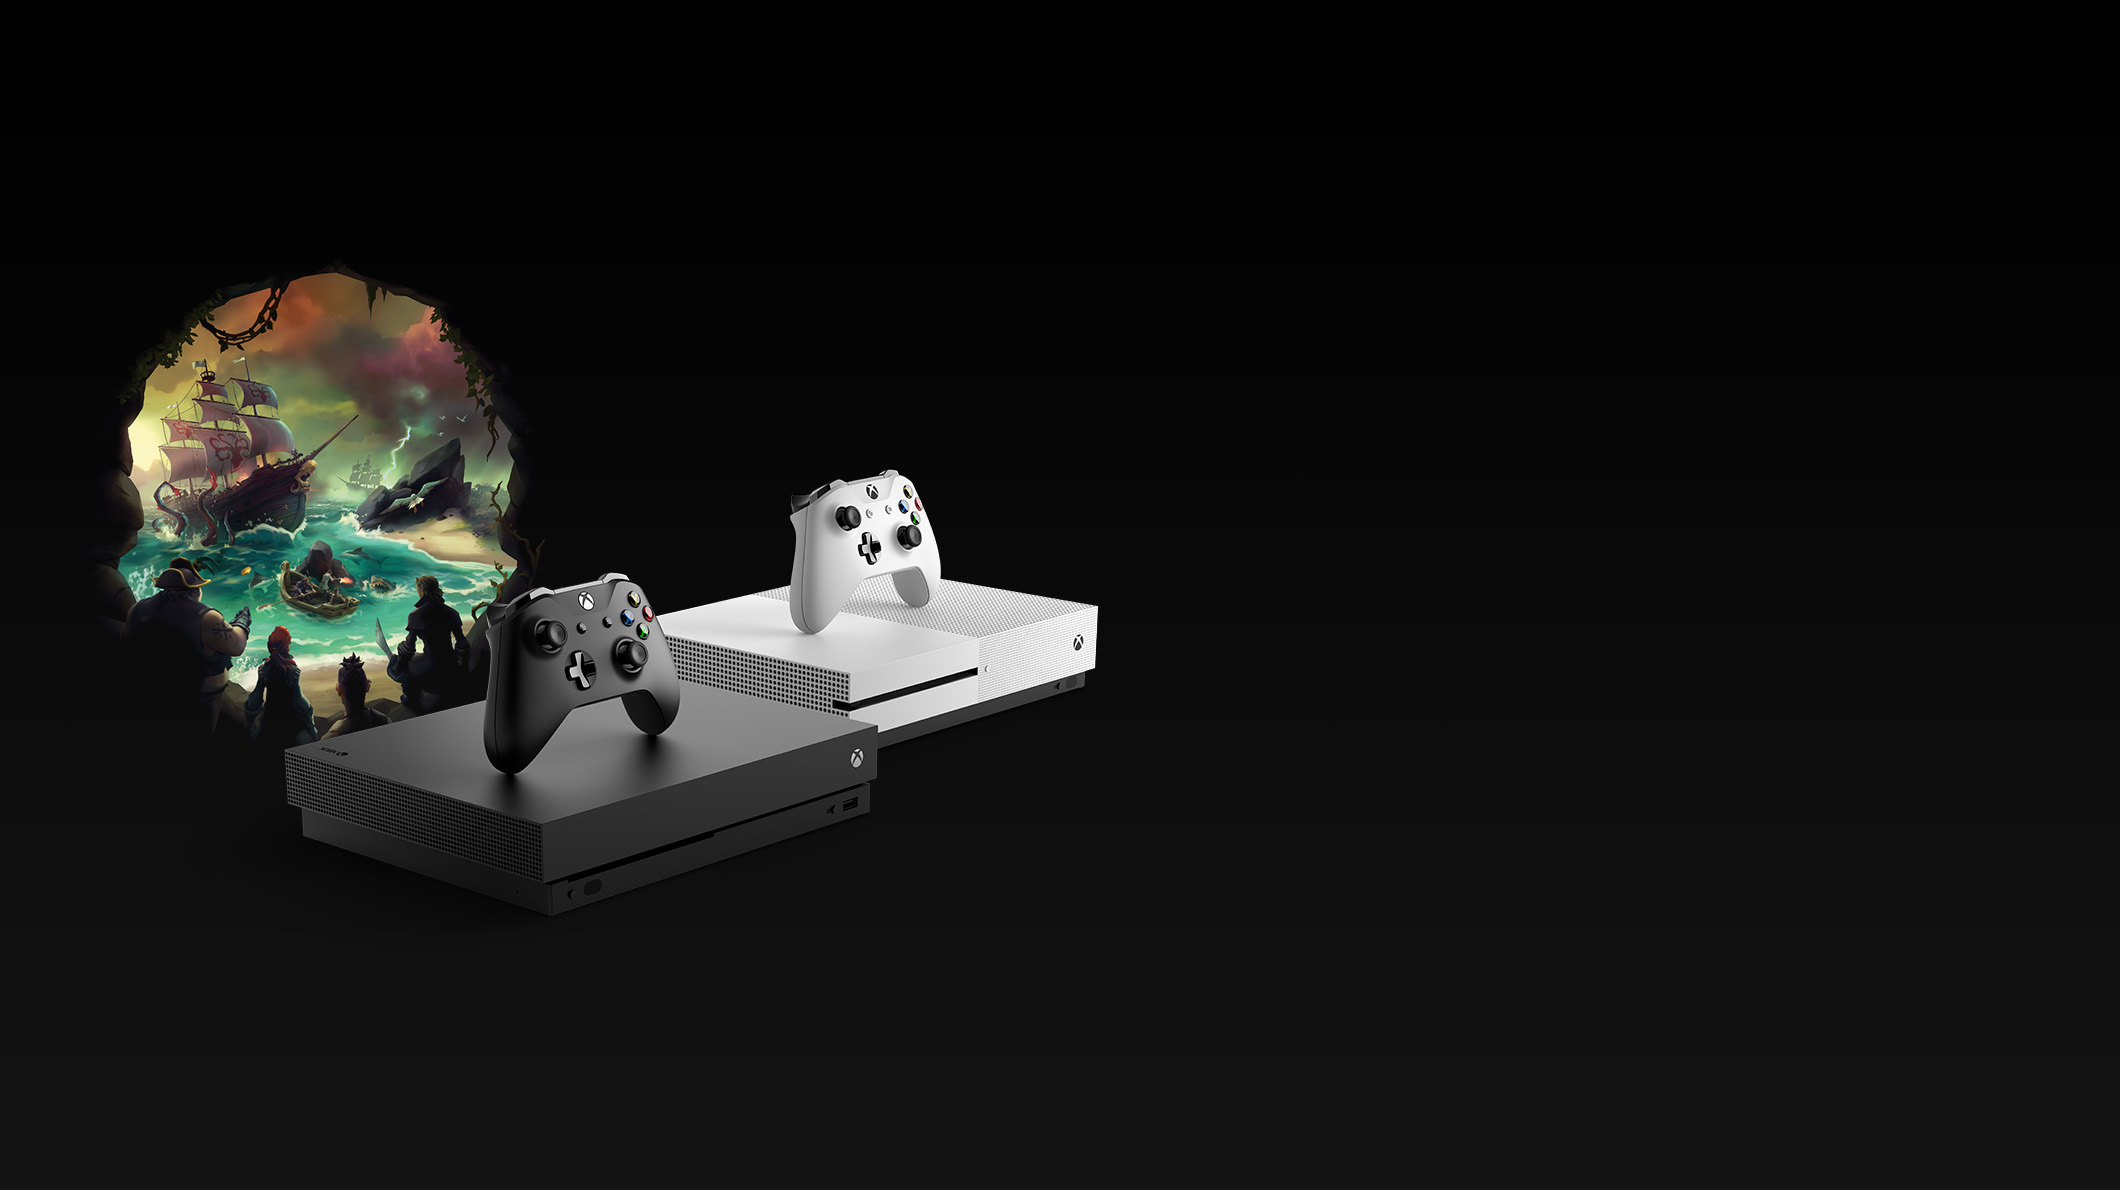 An Xbox One X with a black controller, an Xbox One S with a white controller, and Sea of Thieves game art